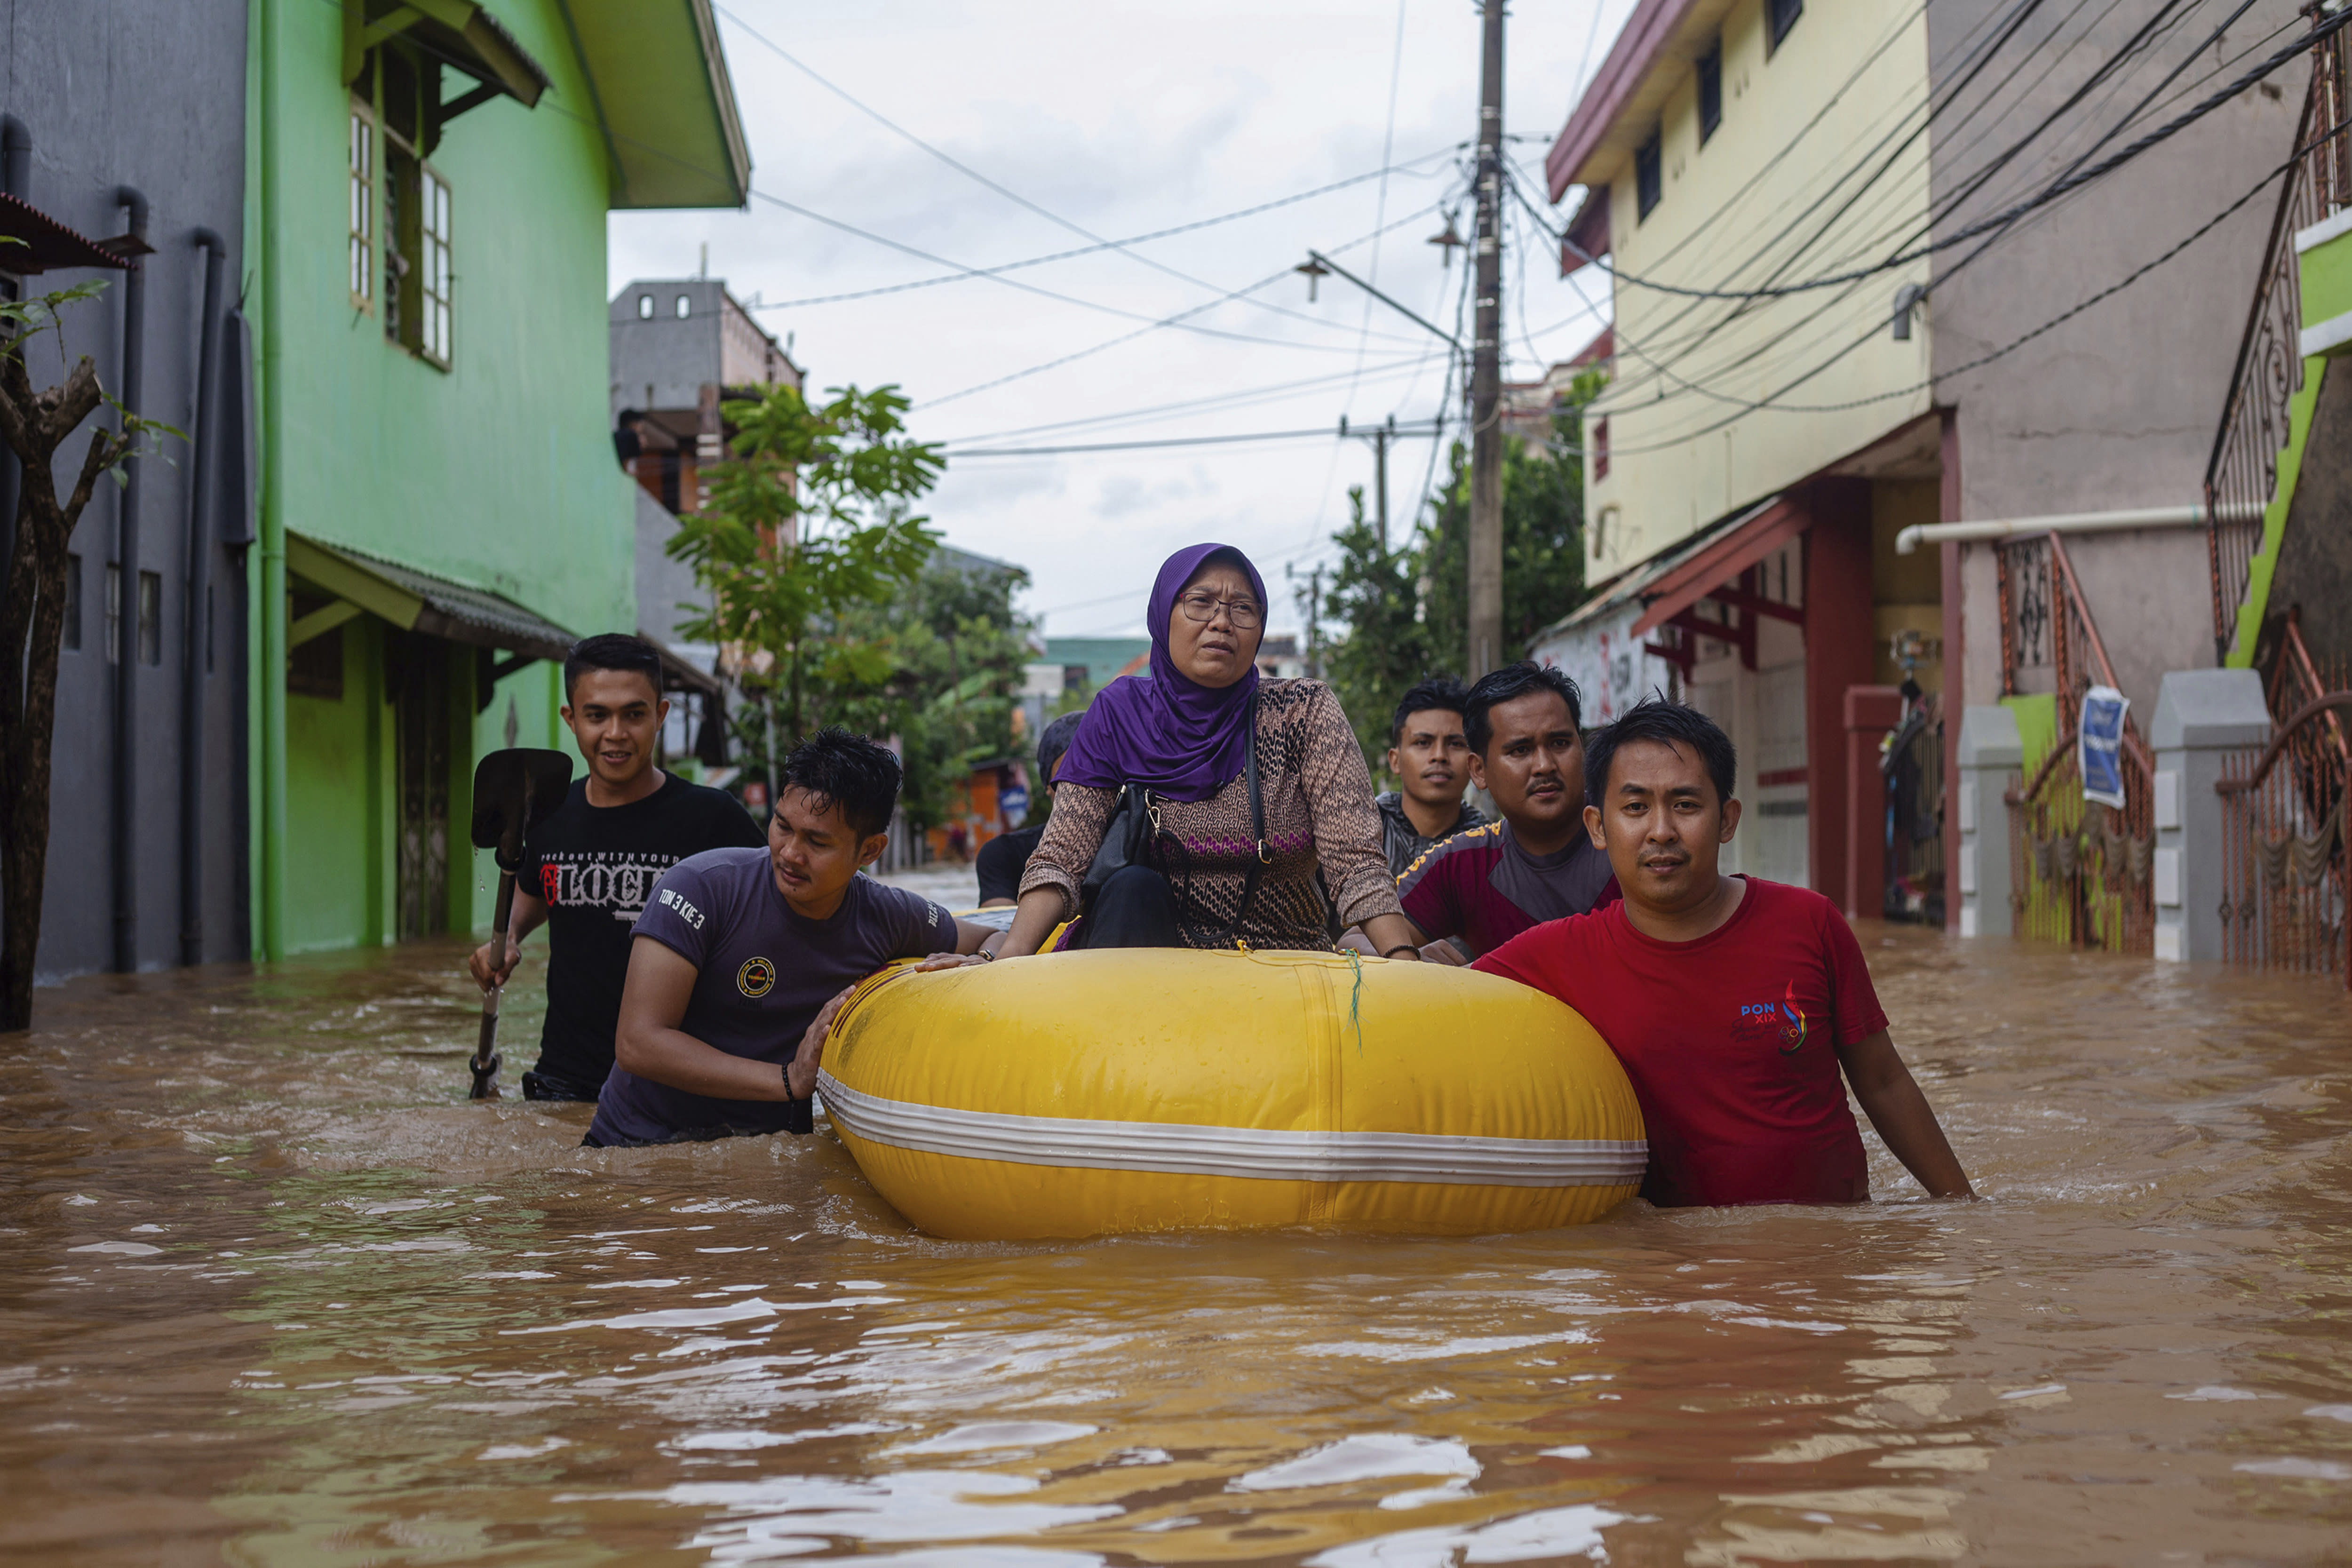 A woman sits on a rubber boat as she is evacuated from a flooded neighborhood in Makassar, South Sulawesi, Indonesia, Wednesday, Jan. 23, 2019. Torrential rains that overwhelmed a dam and caused landslides killed at least six people and displaced more than 2,000 in central Indonesia, officials said Wednesday. (AP Photo/Yusuf Wahil)